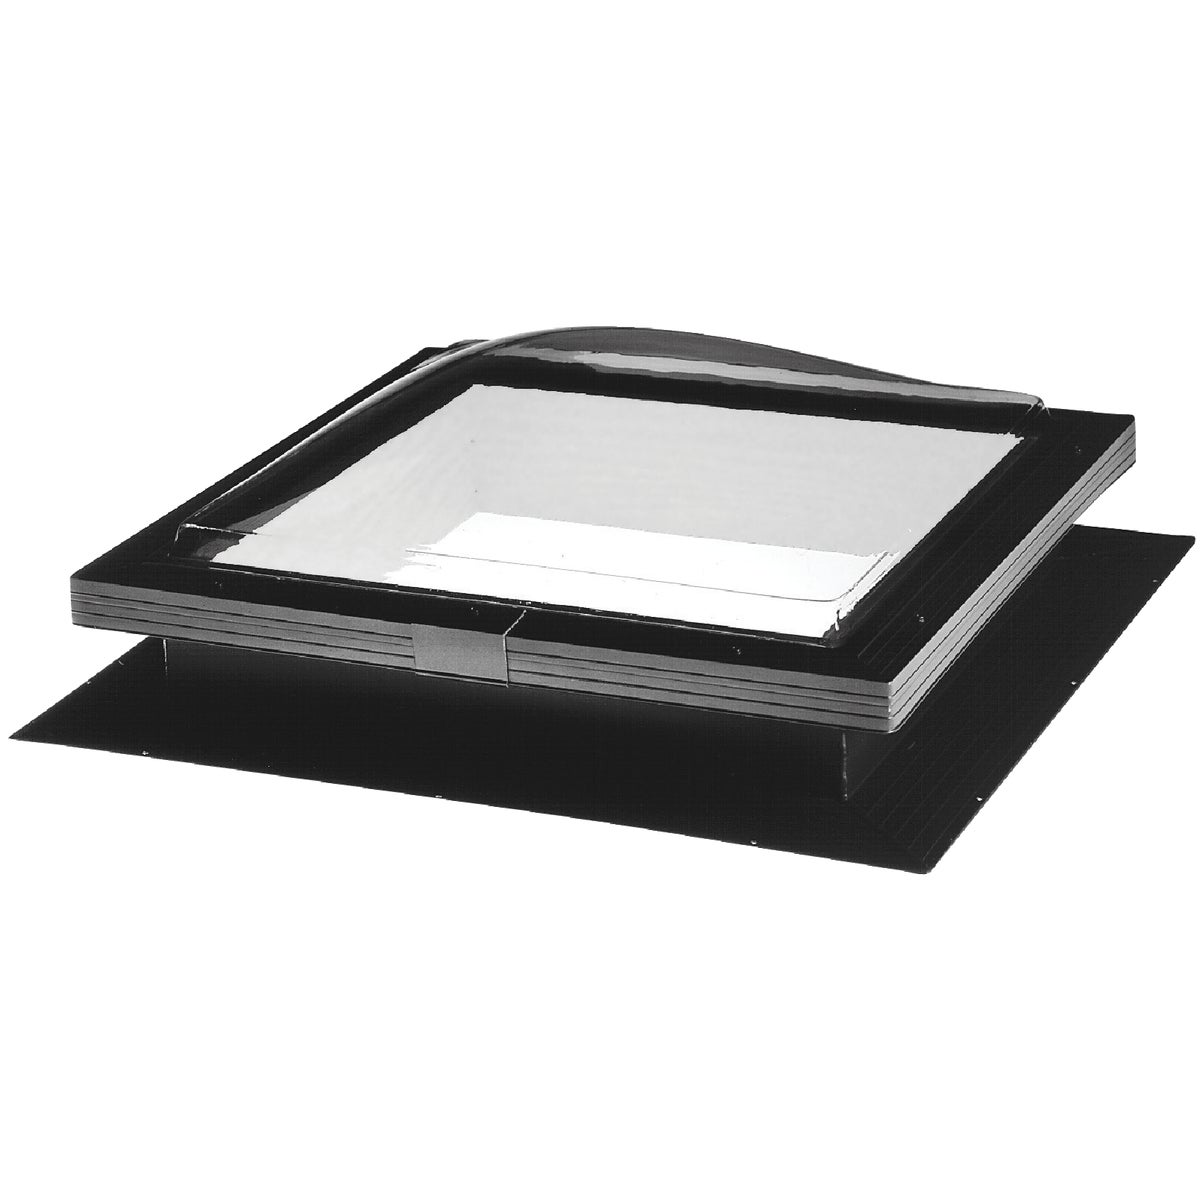 2X2 BRZ 2-DOME SKYLIGHT